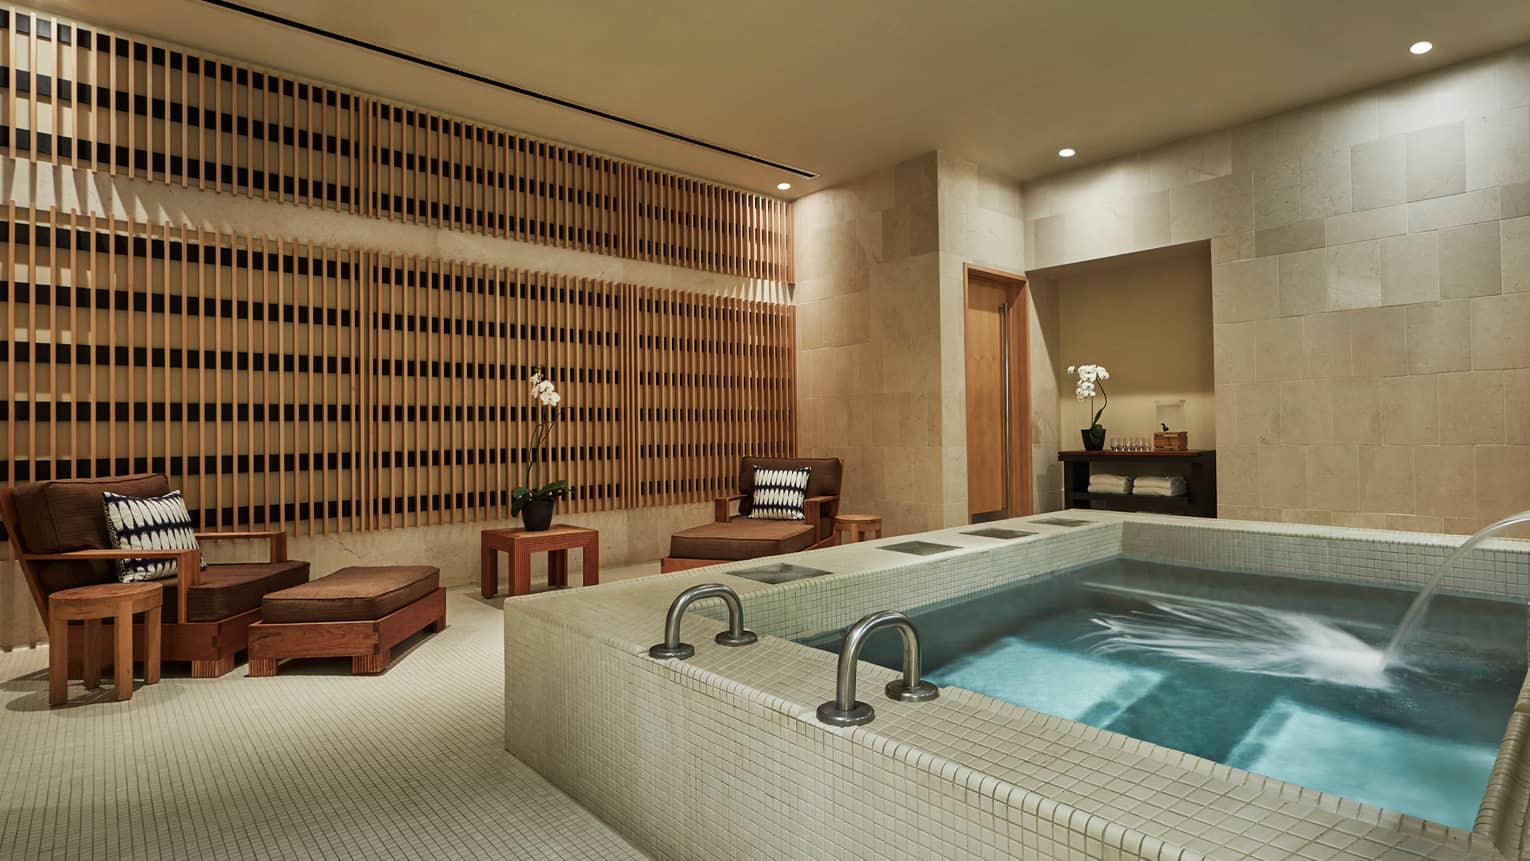 Large square spa tub with water jets in tile room with two brown lounge chairs